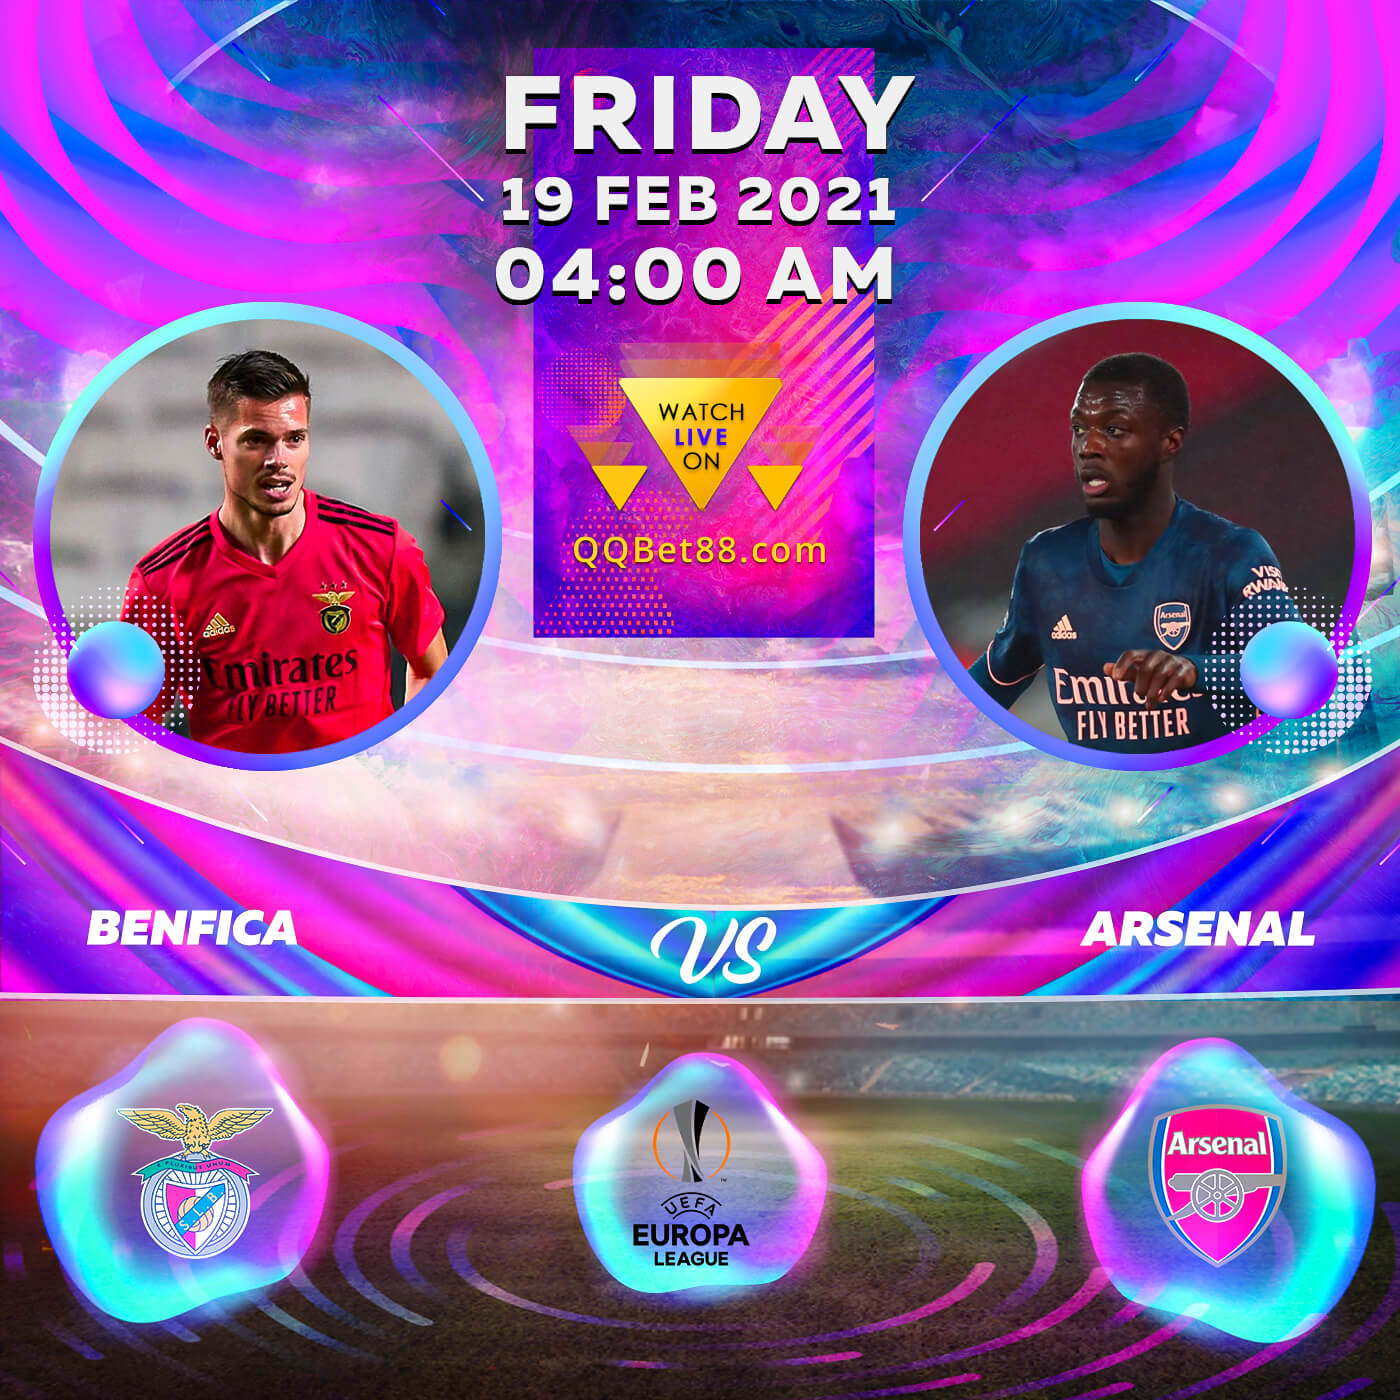 Benfica VS Arsenal